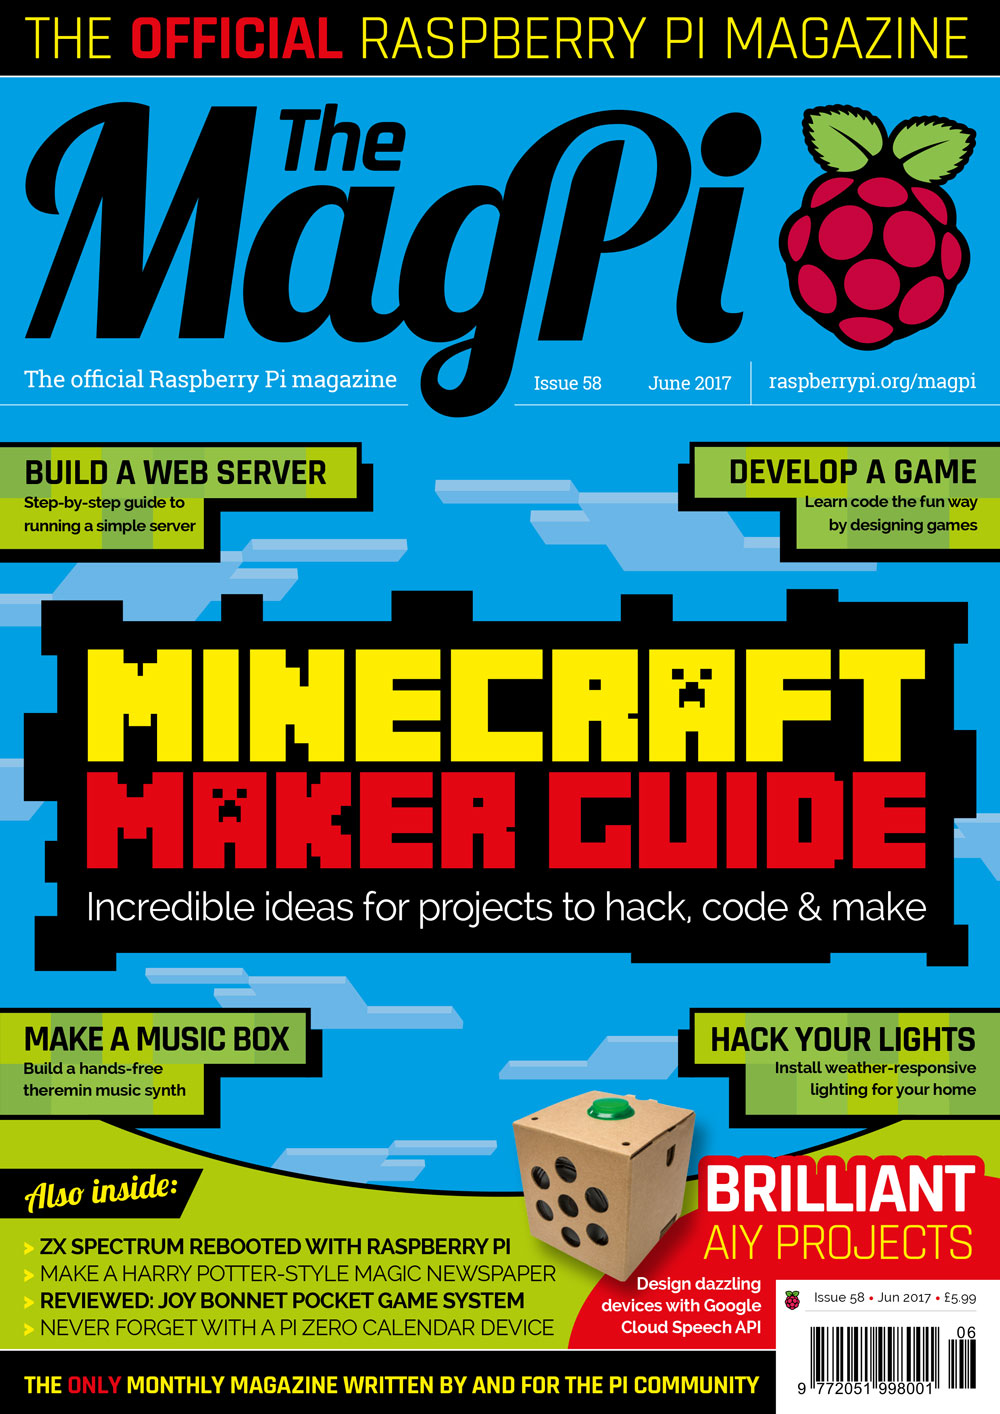 Issue 58 - The MagPi MagazineThe MagPi Magazine